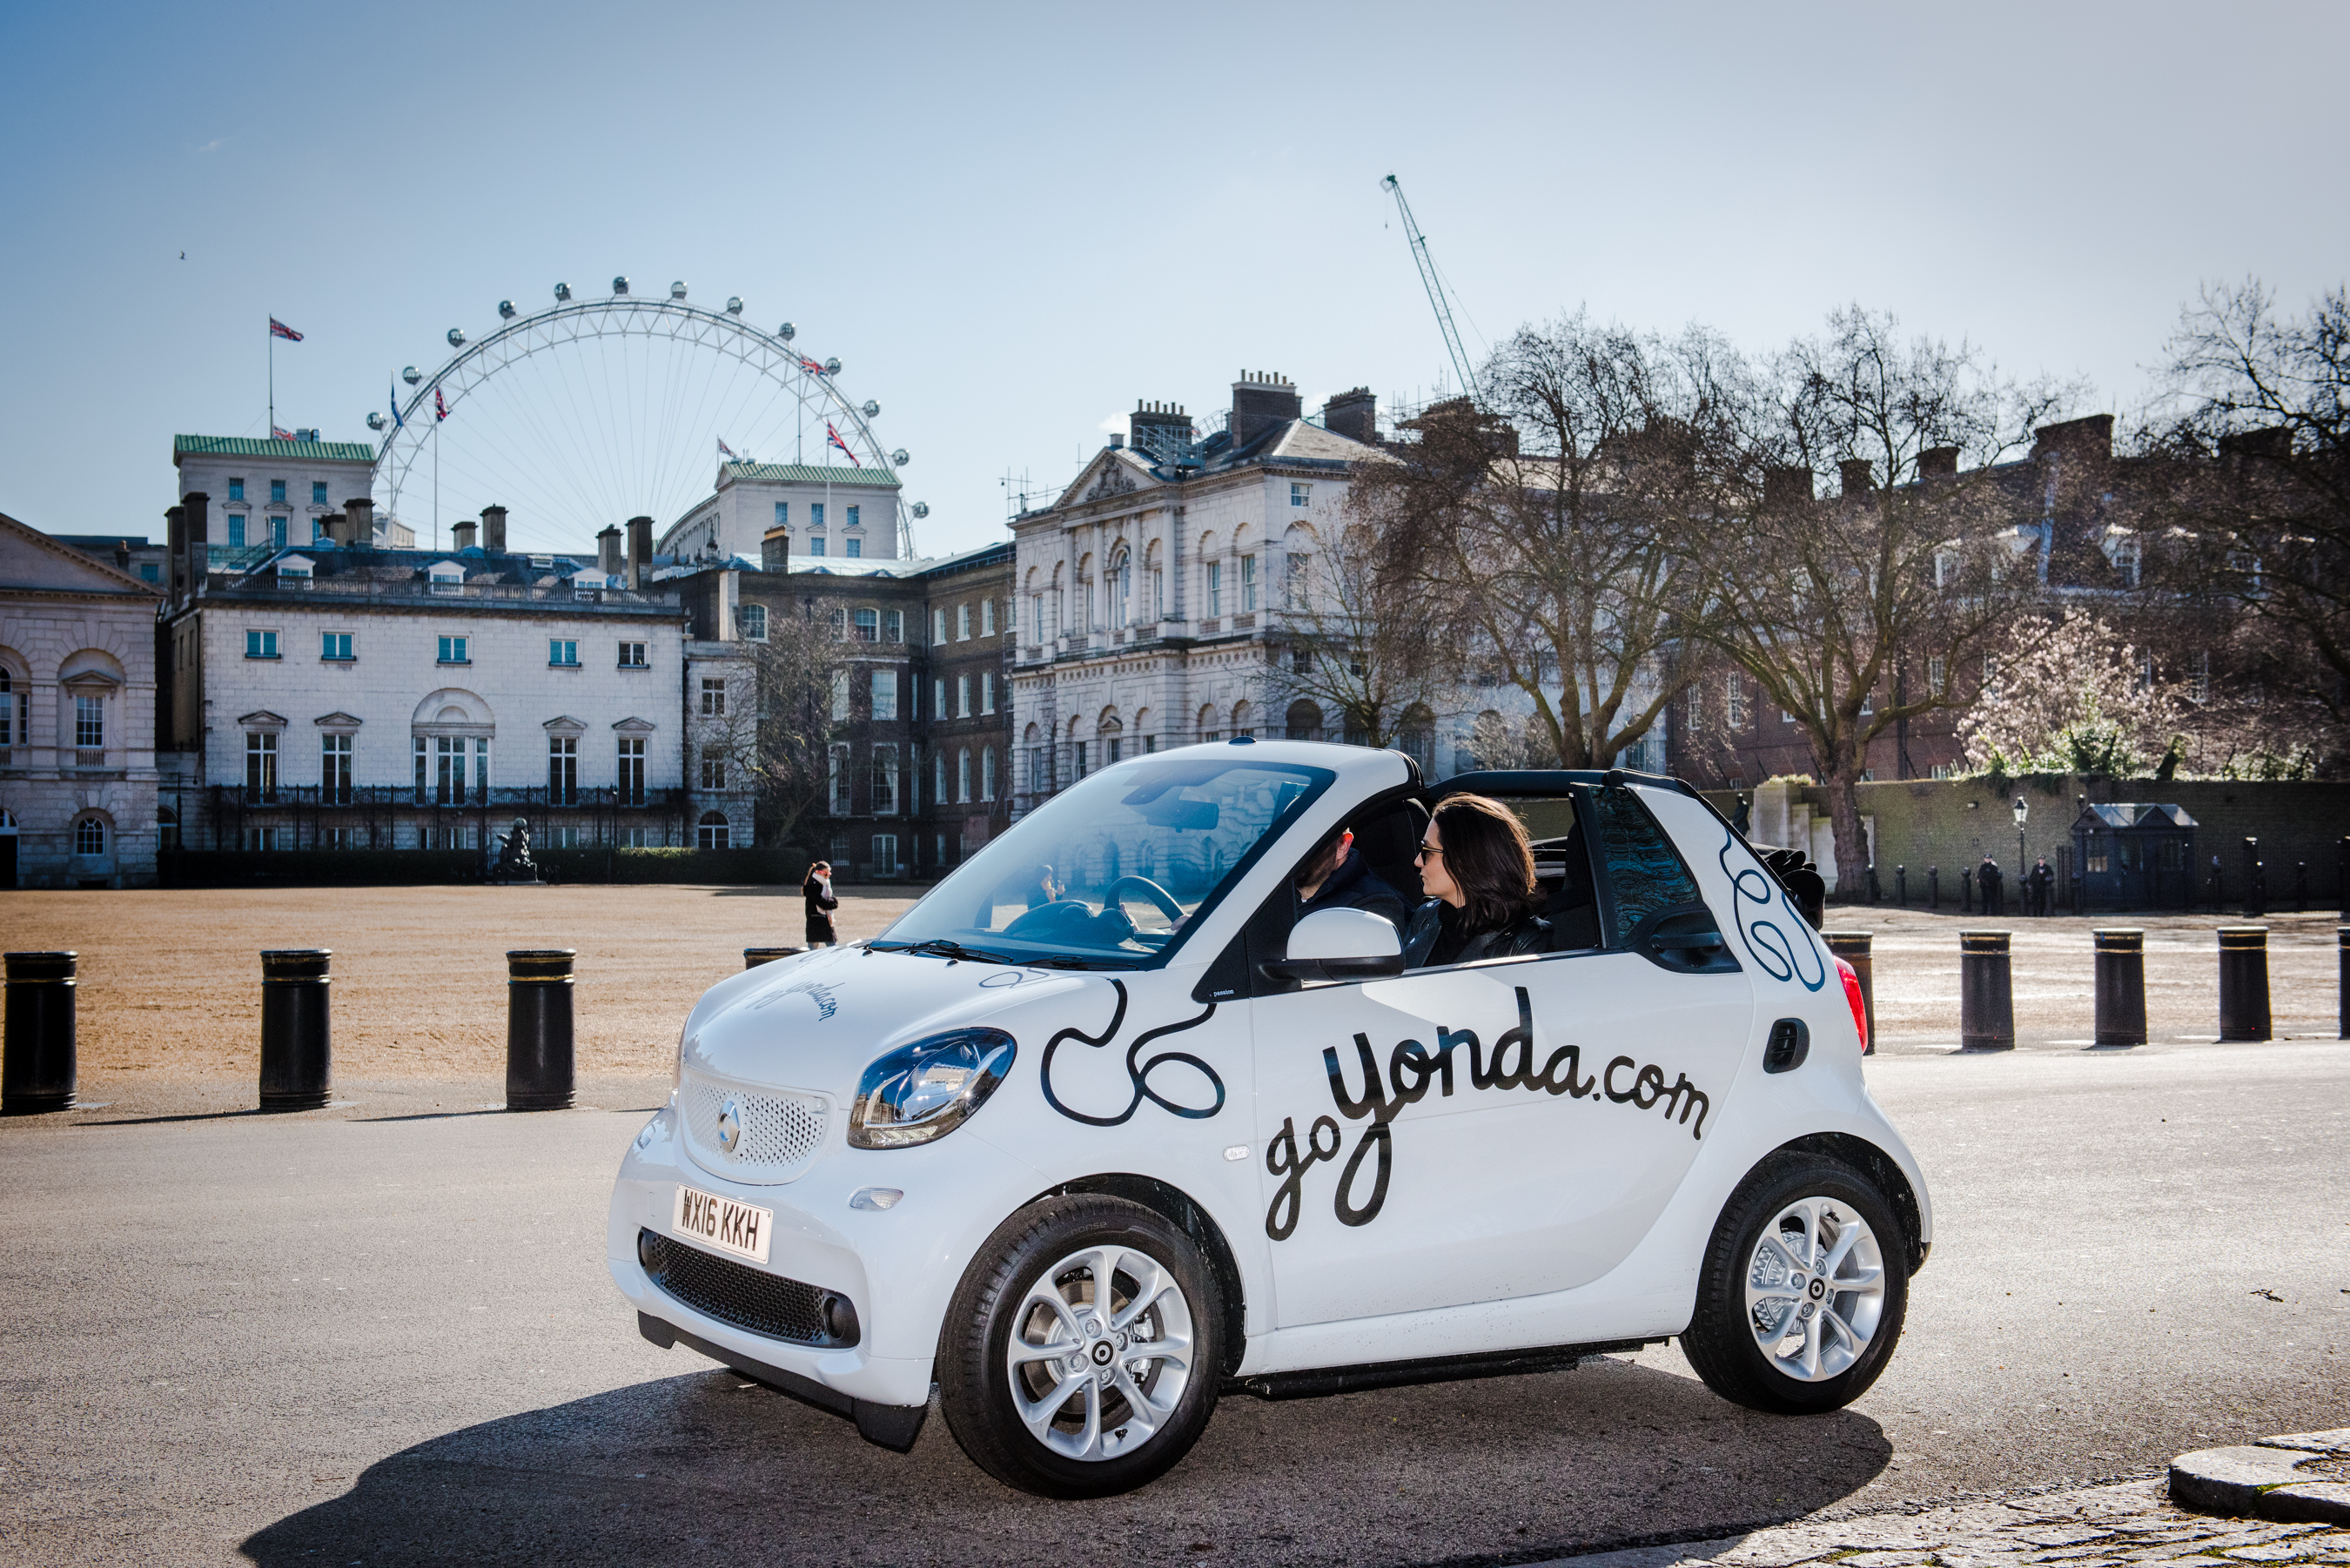 Smart Car sightseeing firm wants agents to go Yonda